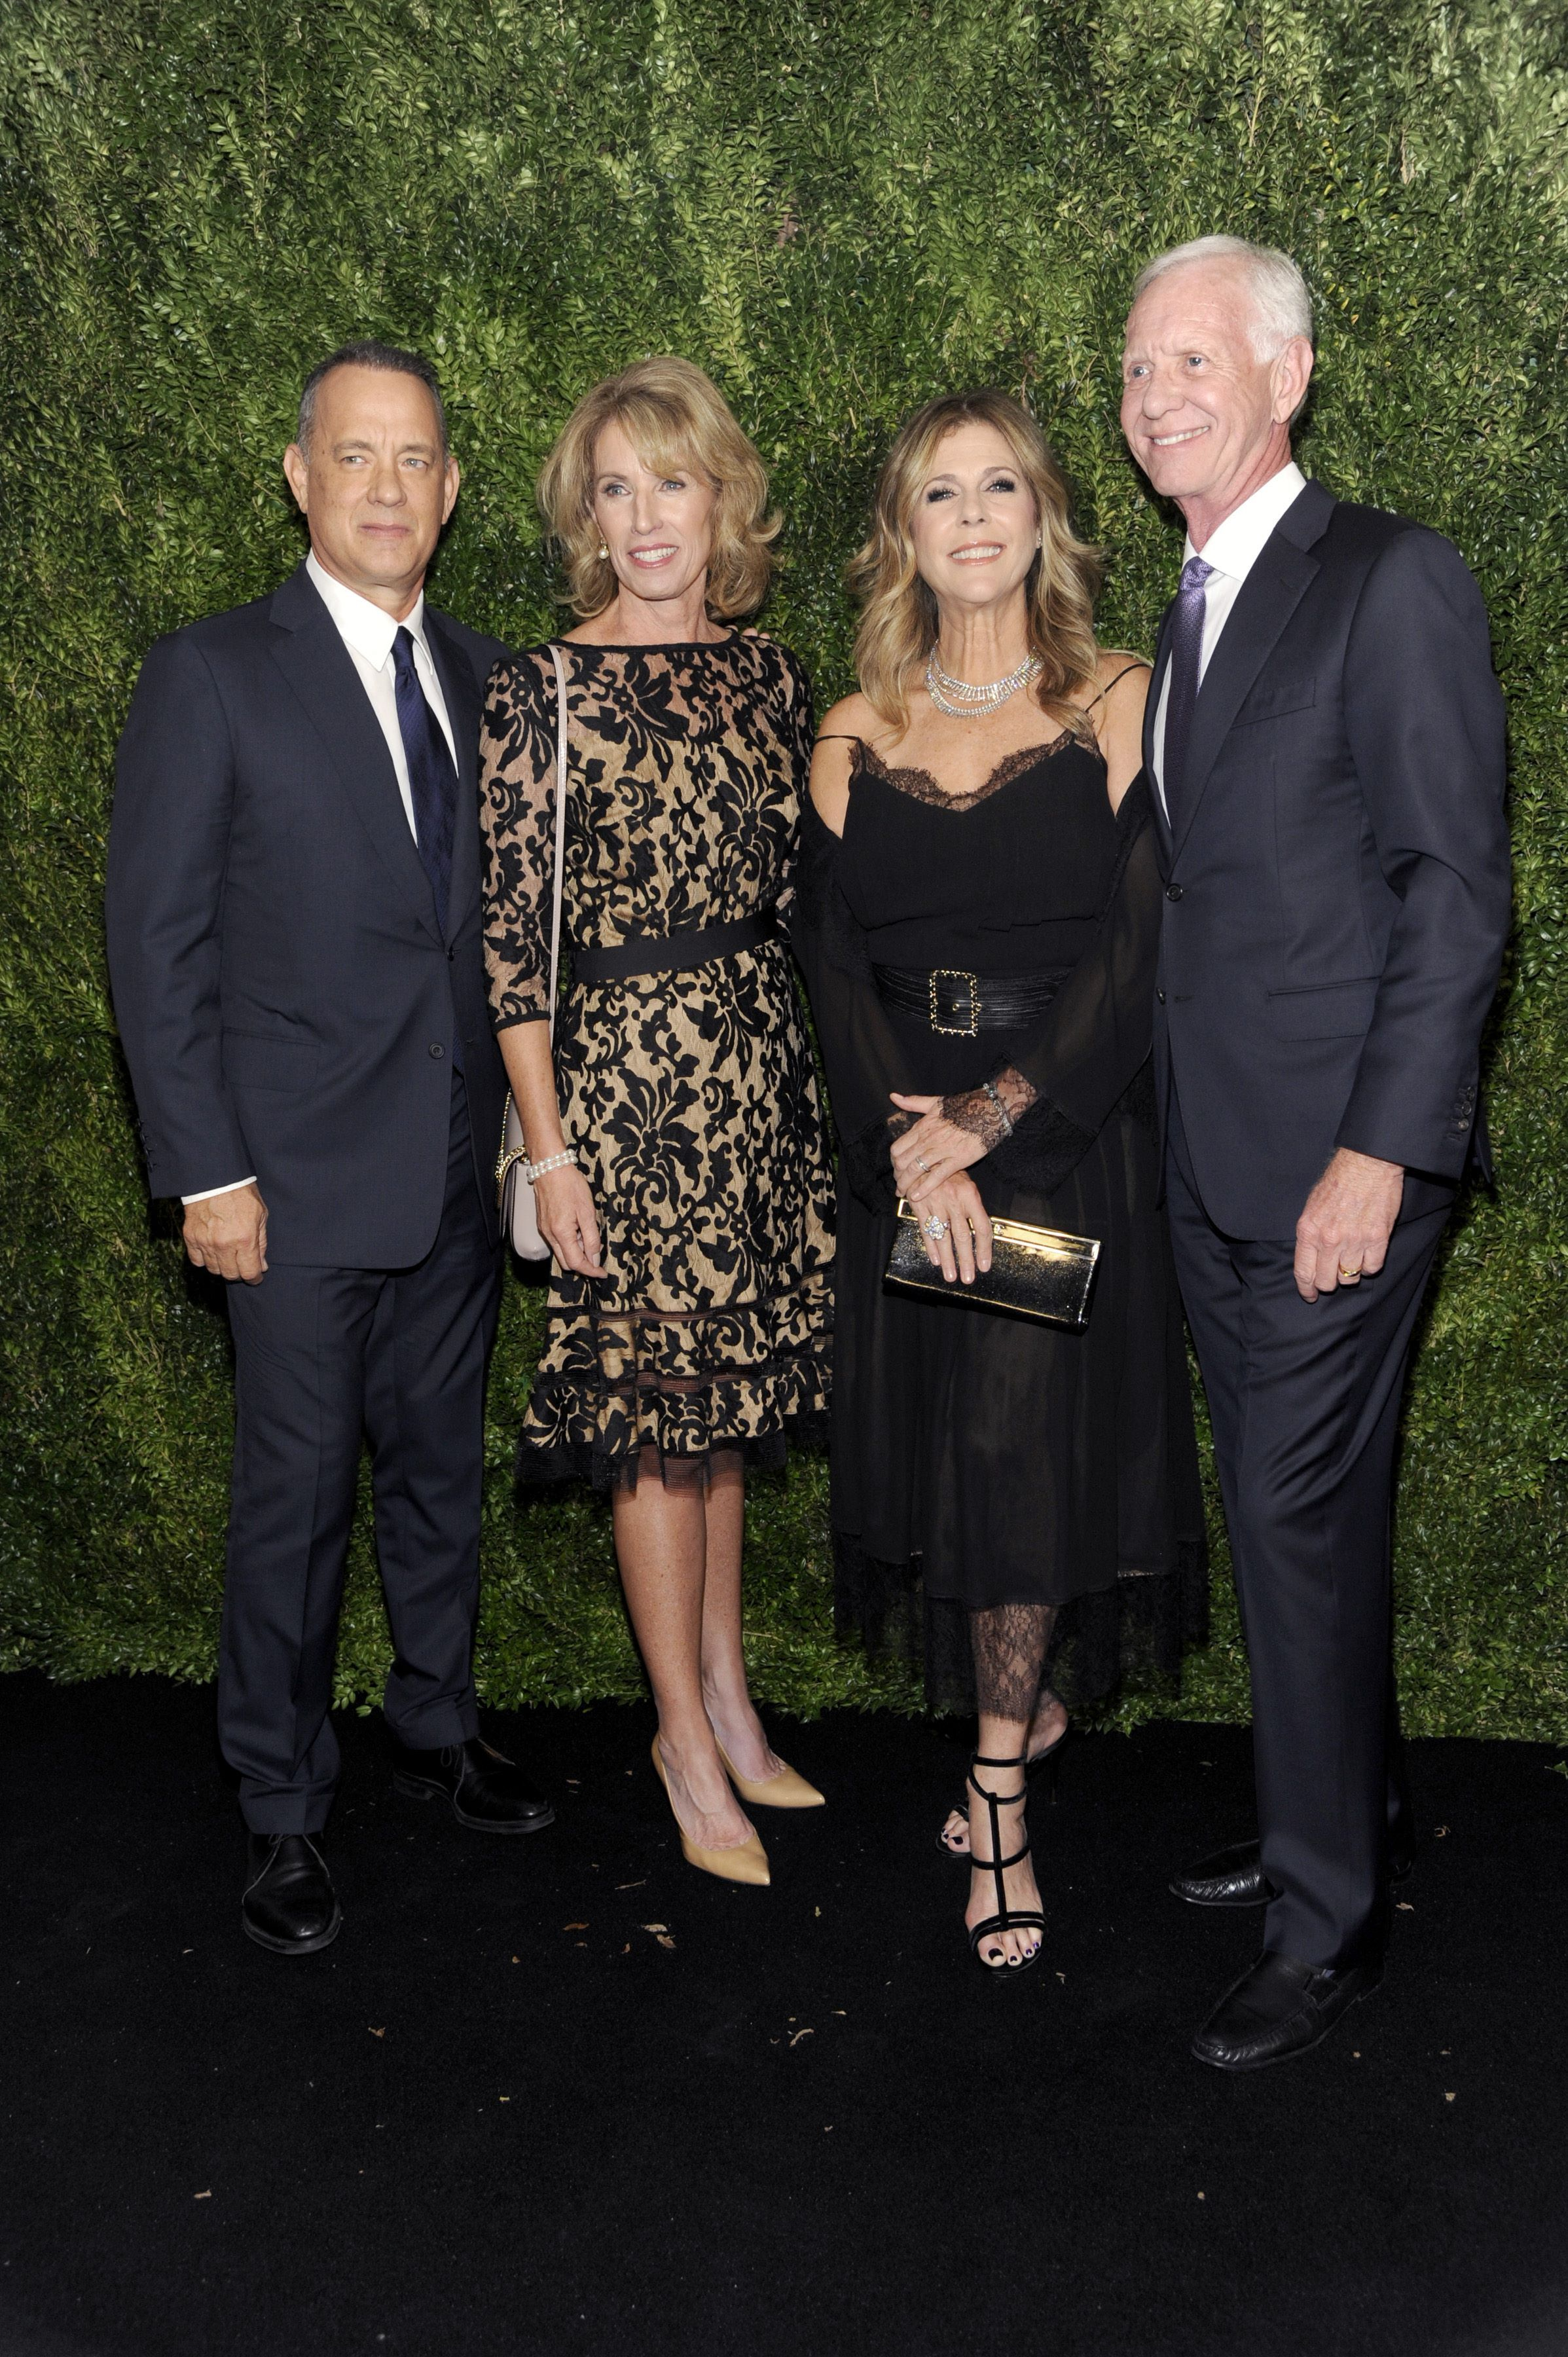 tom_hanks_rita_wilson_lorrie_sullenberger_and_chesley_sullenberger_attend_the